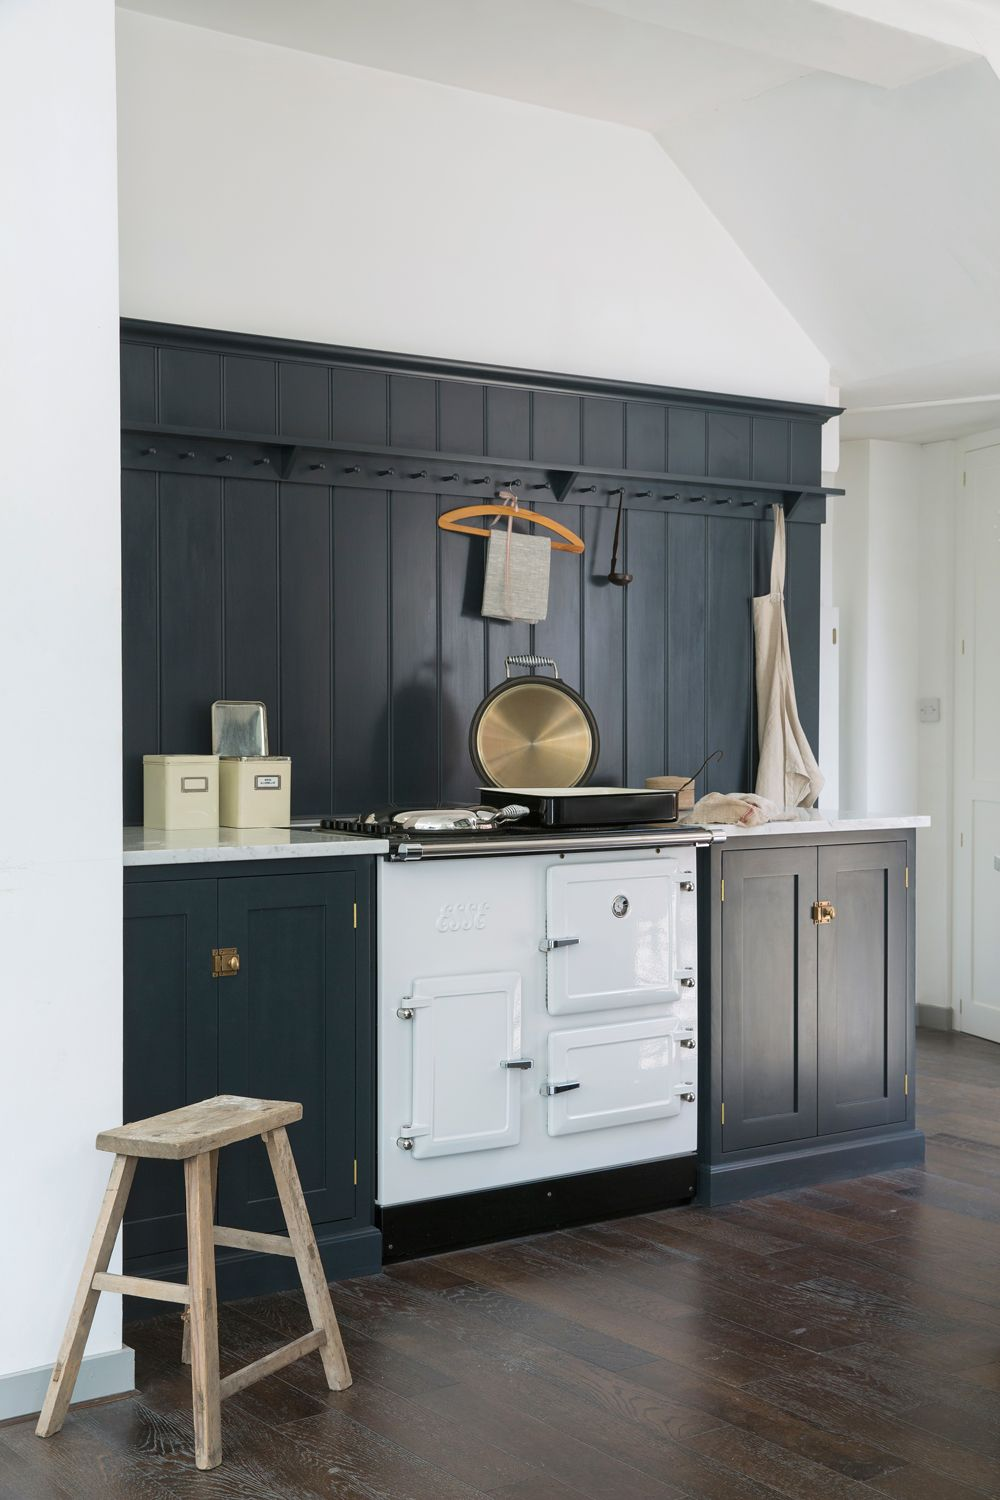 Simple shaker style and a beautiful white esse range cooker in